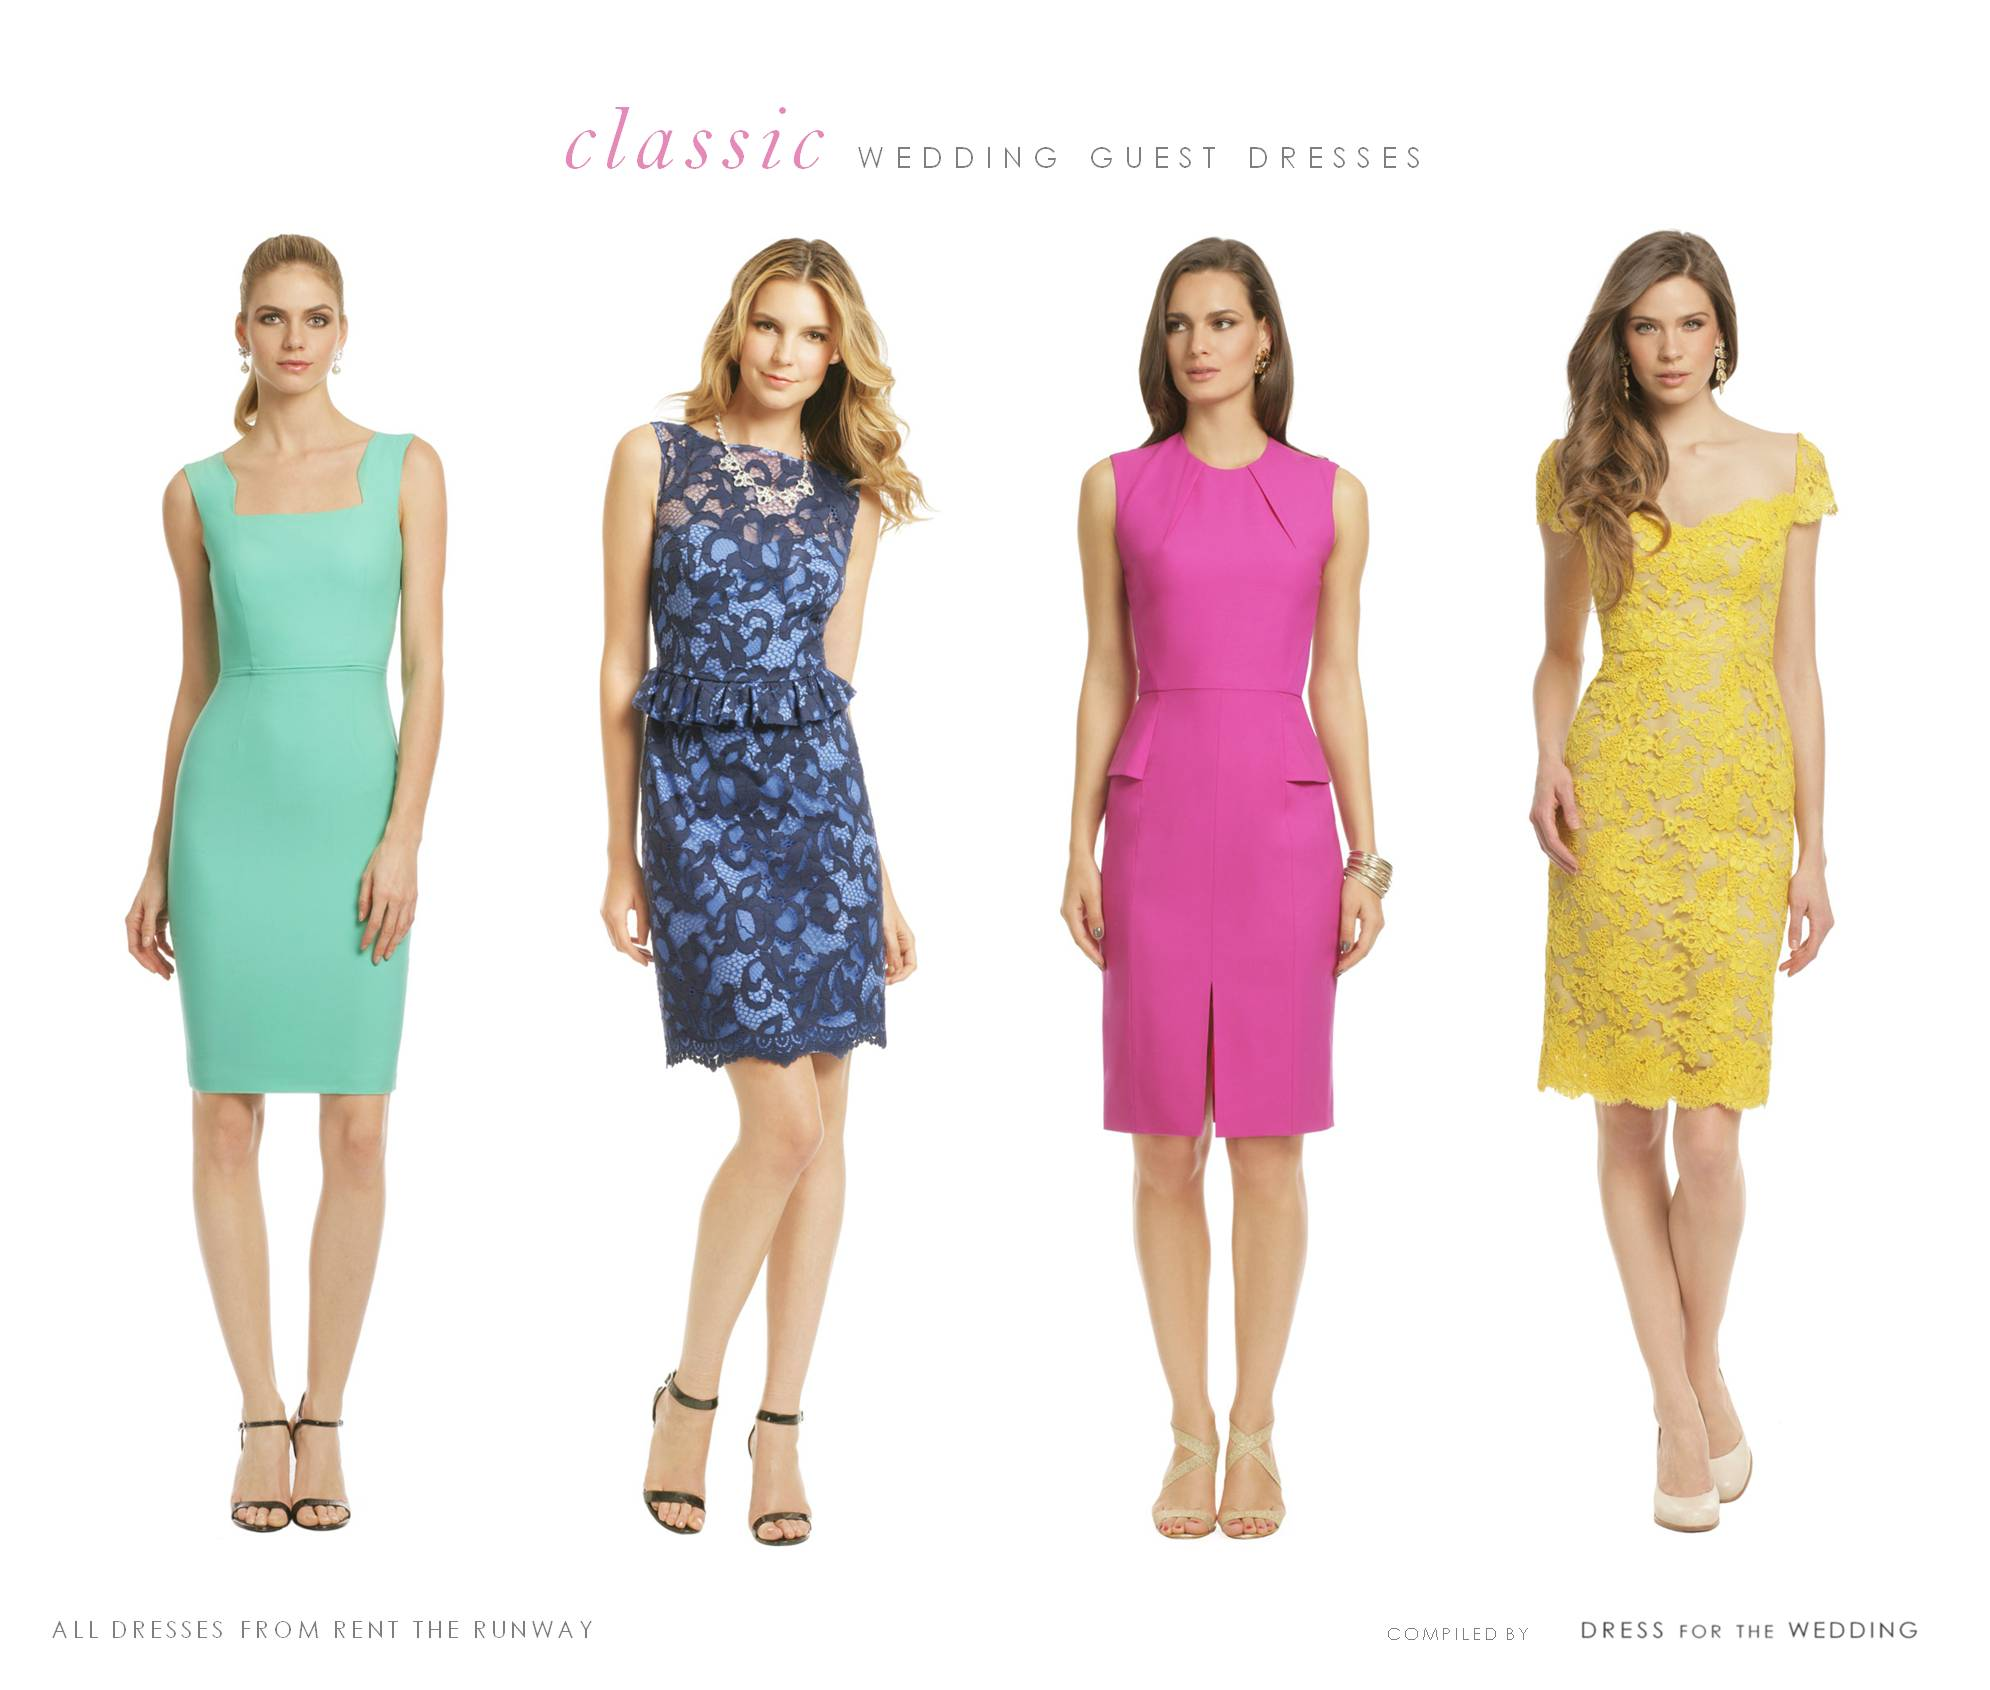 Summer Wedding Guest Dresses for Rent | Guest of Wedding Dresses